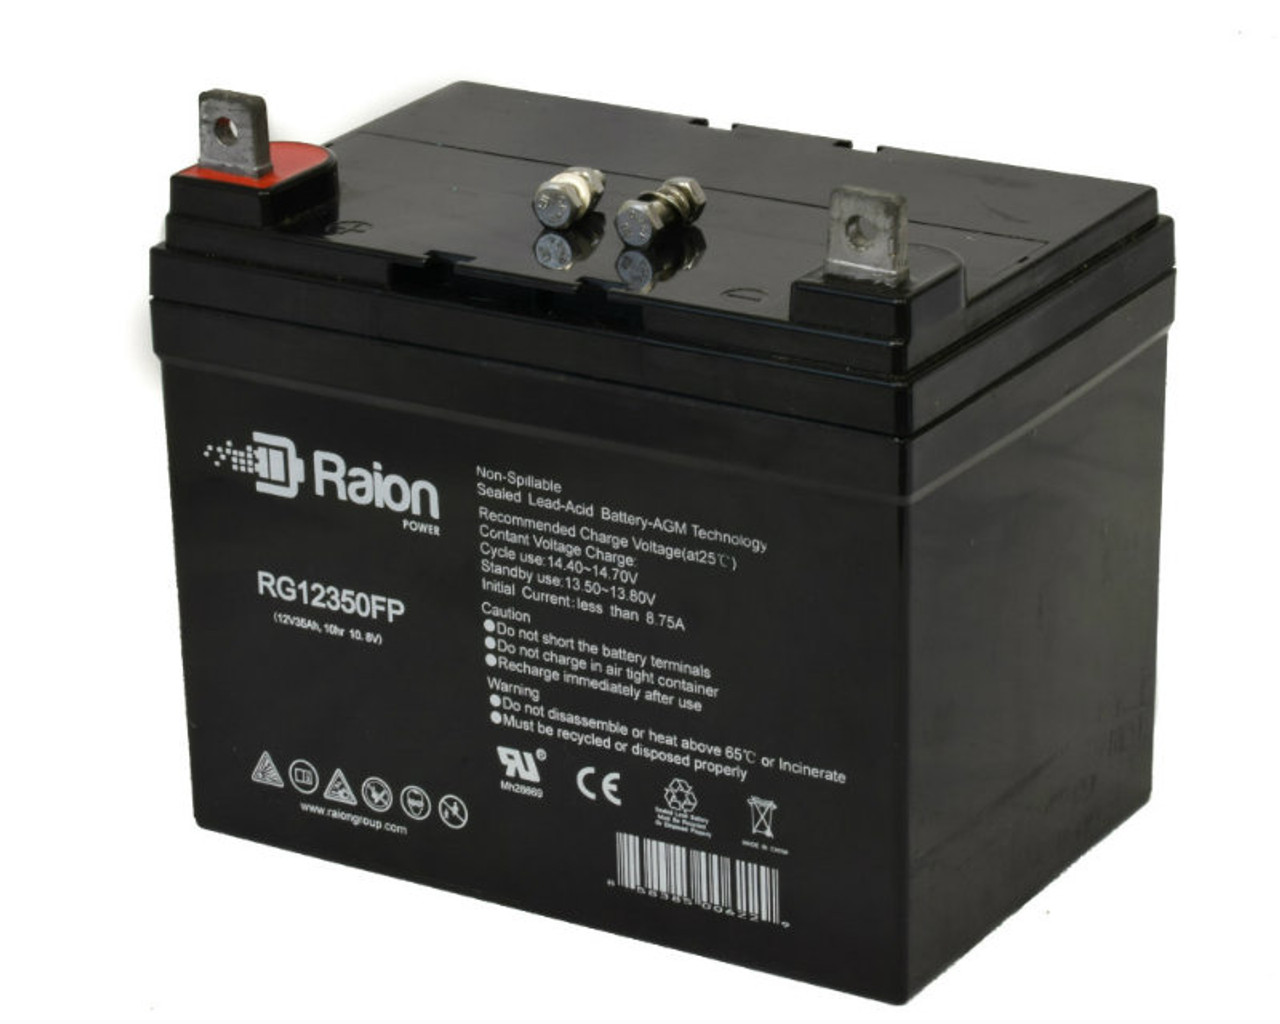 Raion Power RG12350FP Replacement Wheelchair Battery For Ranger All Seasons 2X3 (1 Pack)